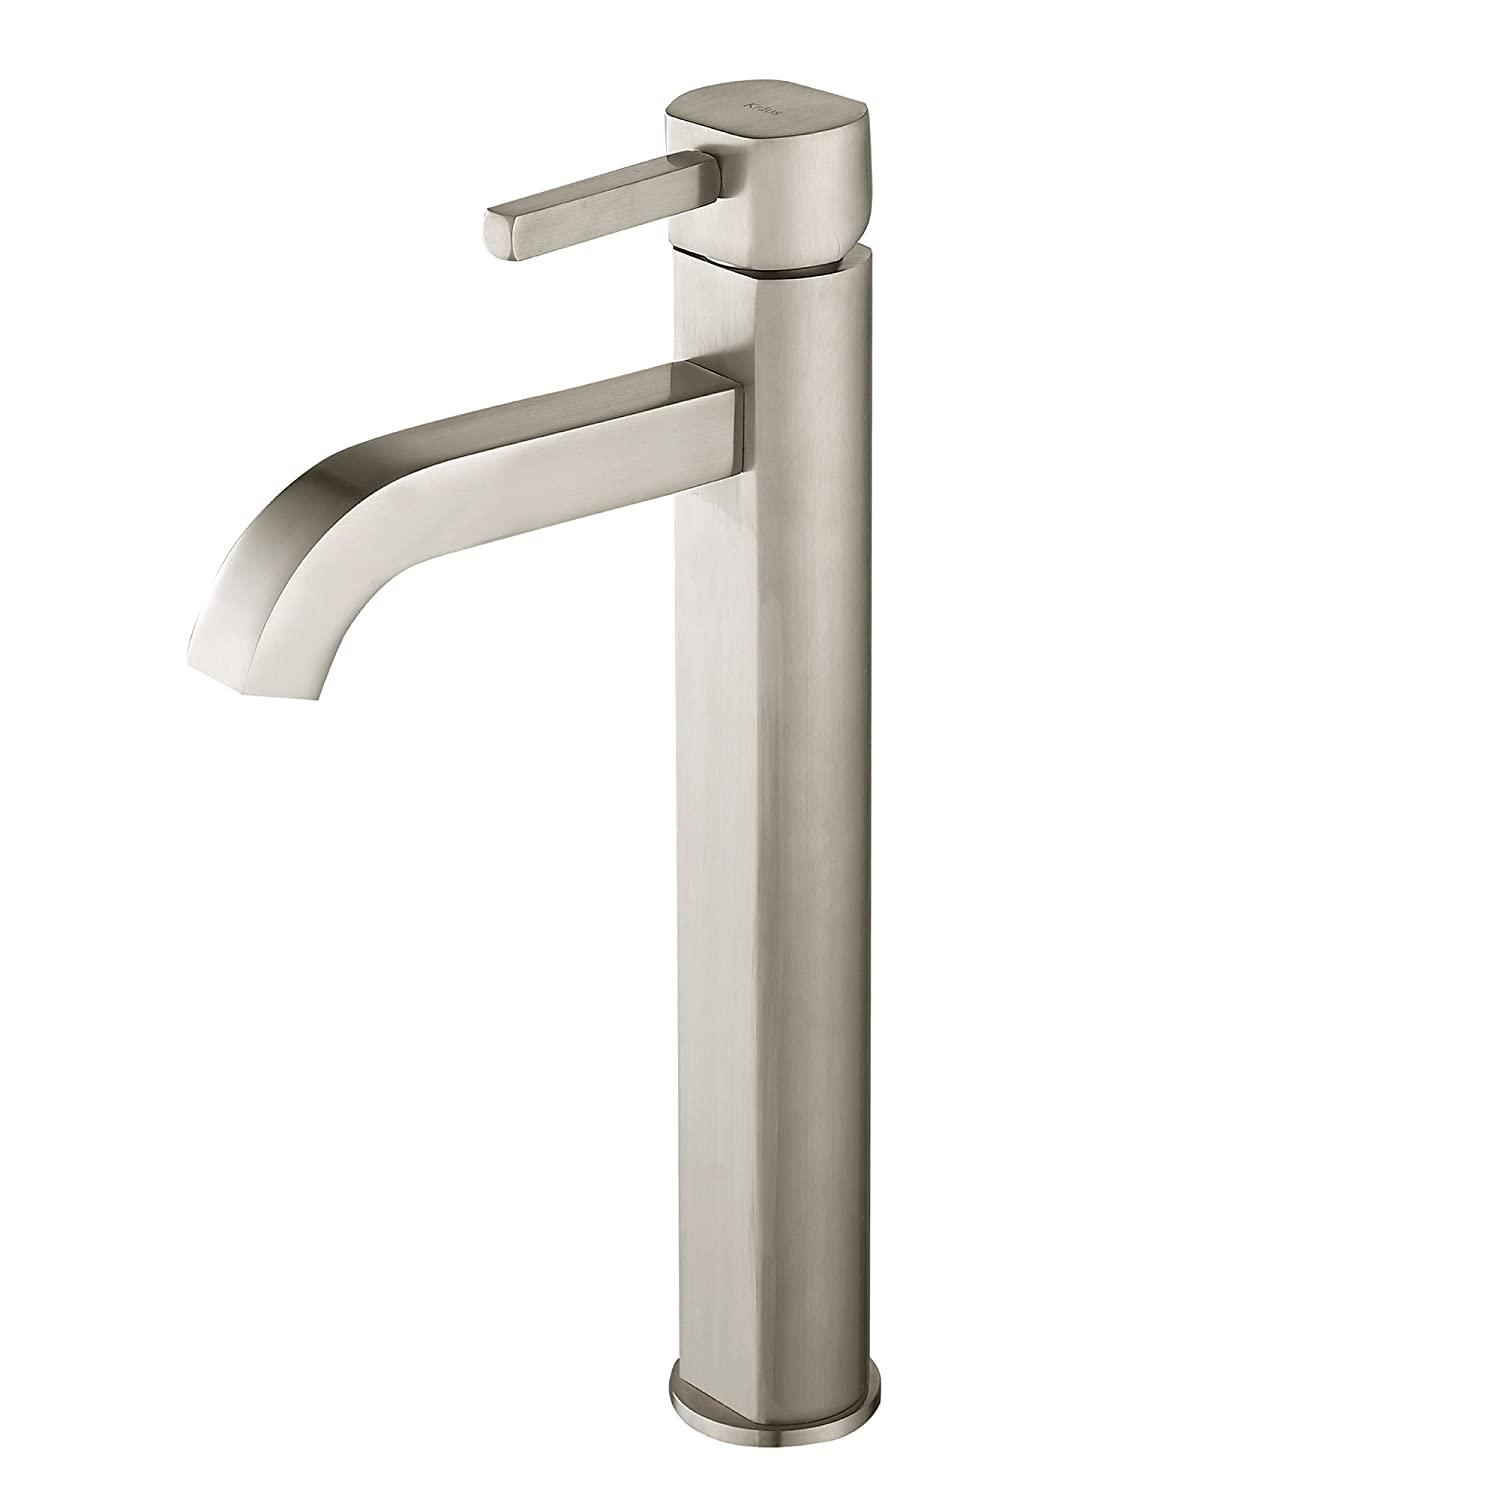 Gentil Kraus FVS 1007SN Ramus Single Lever Vessel Bathroom Faucet Satin Nickel    Touch On Bathroom Sink Faucets   Amazon.com